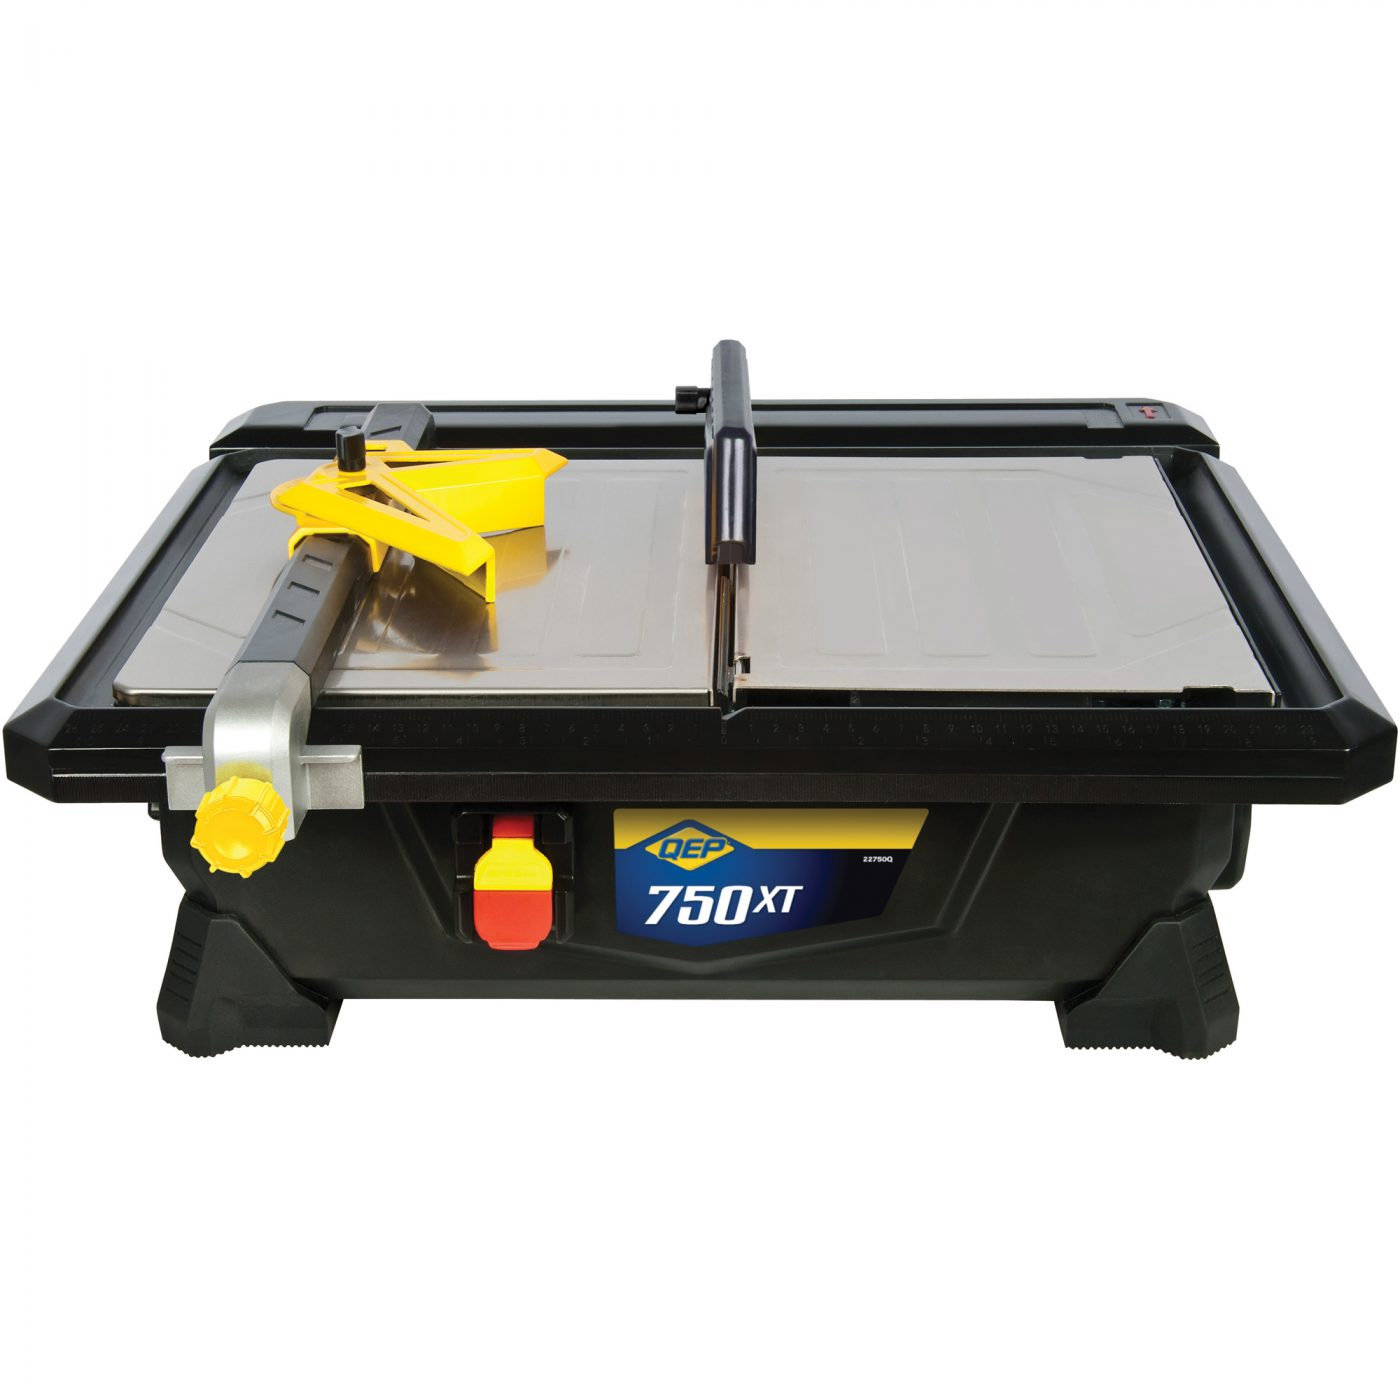 "7"" 750XT Tile Wet Saw"